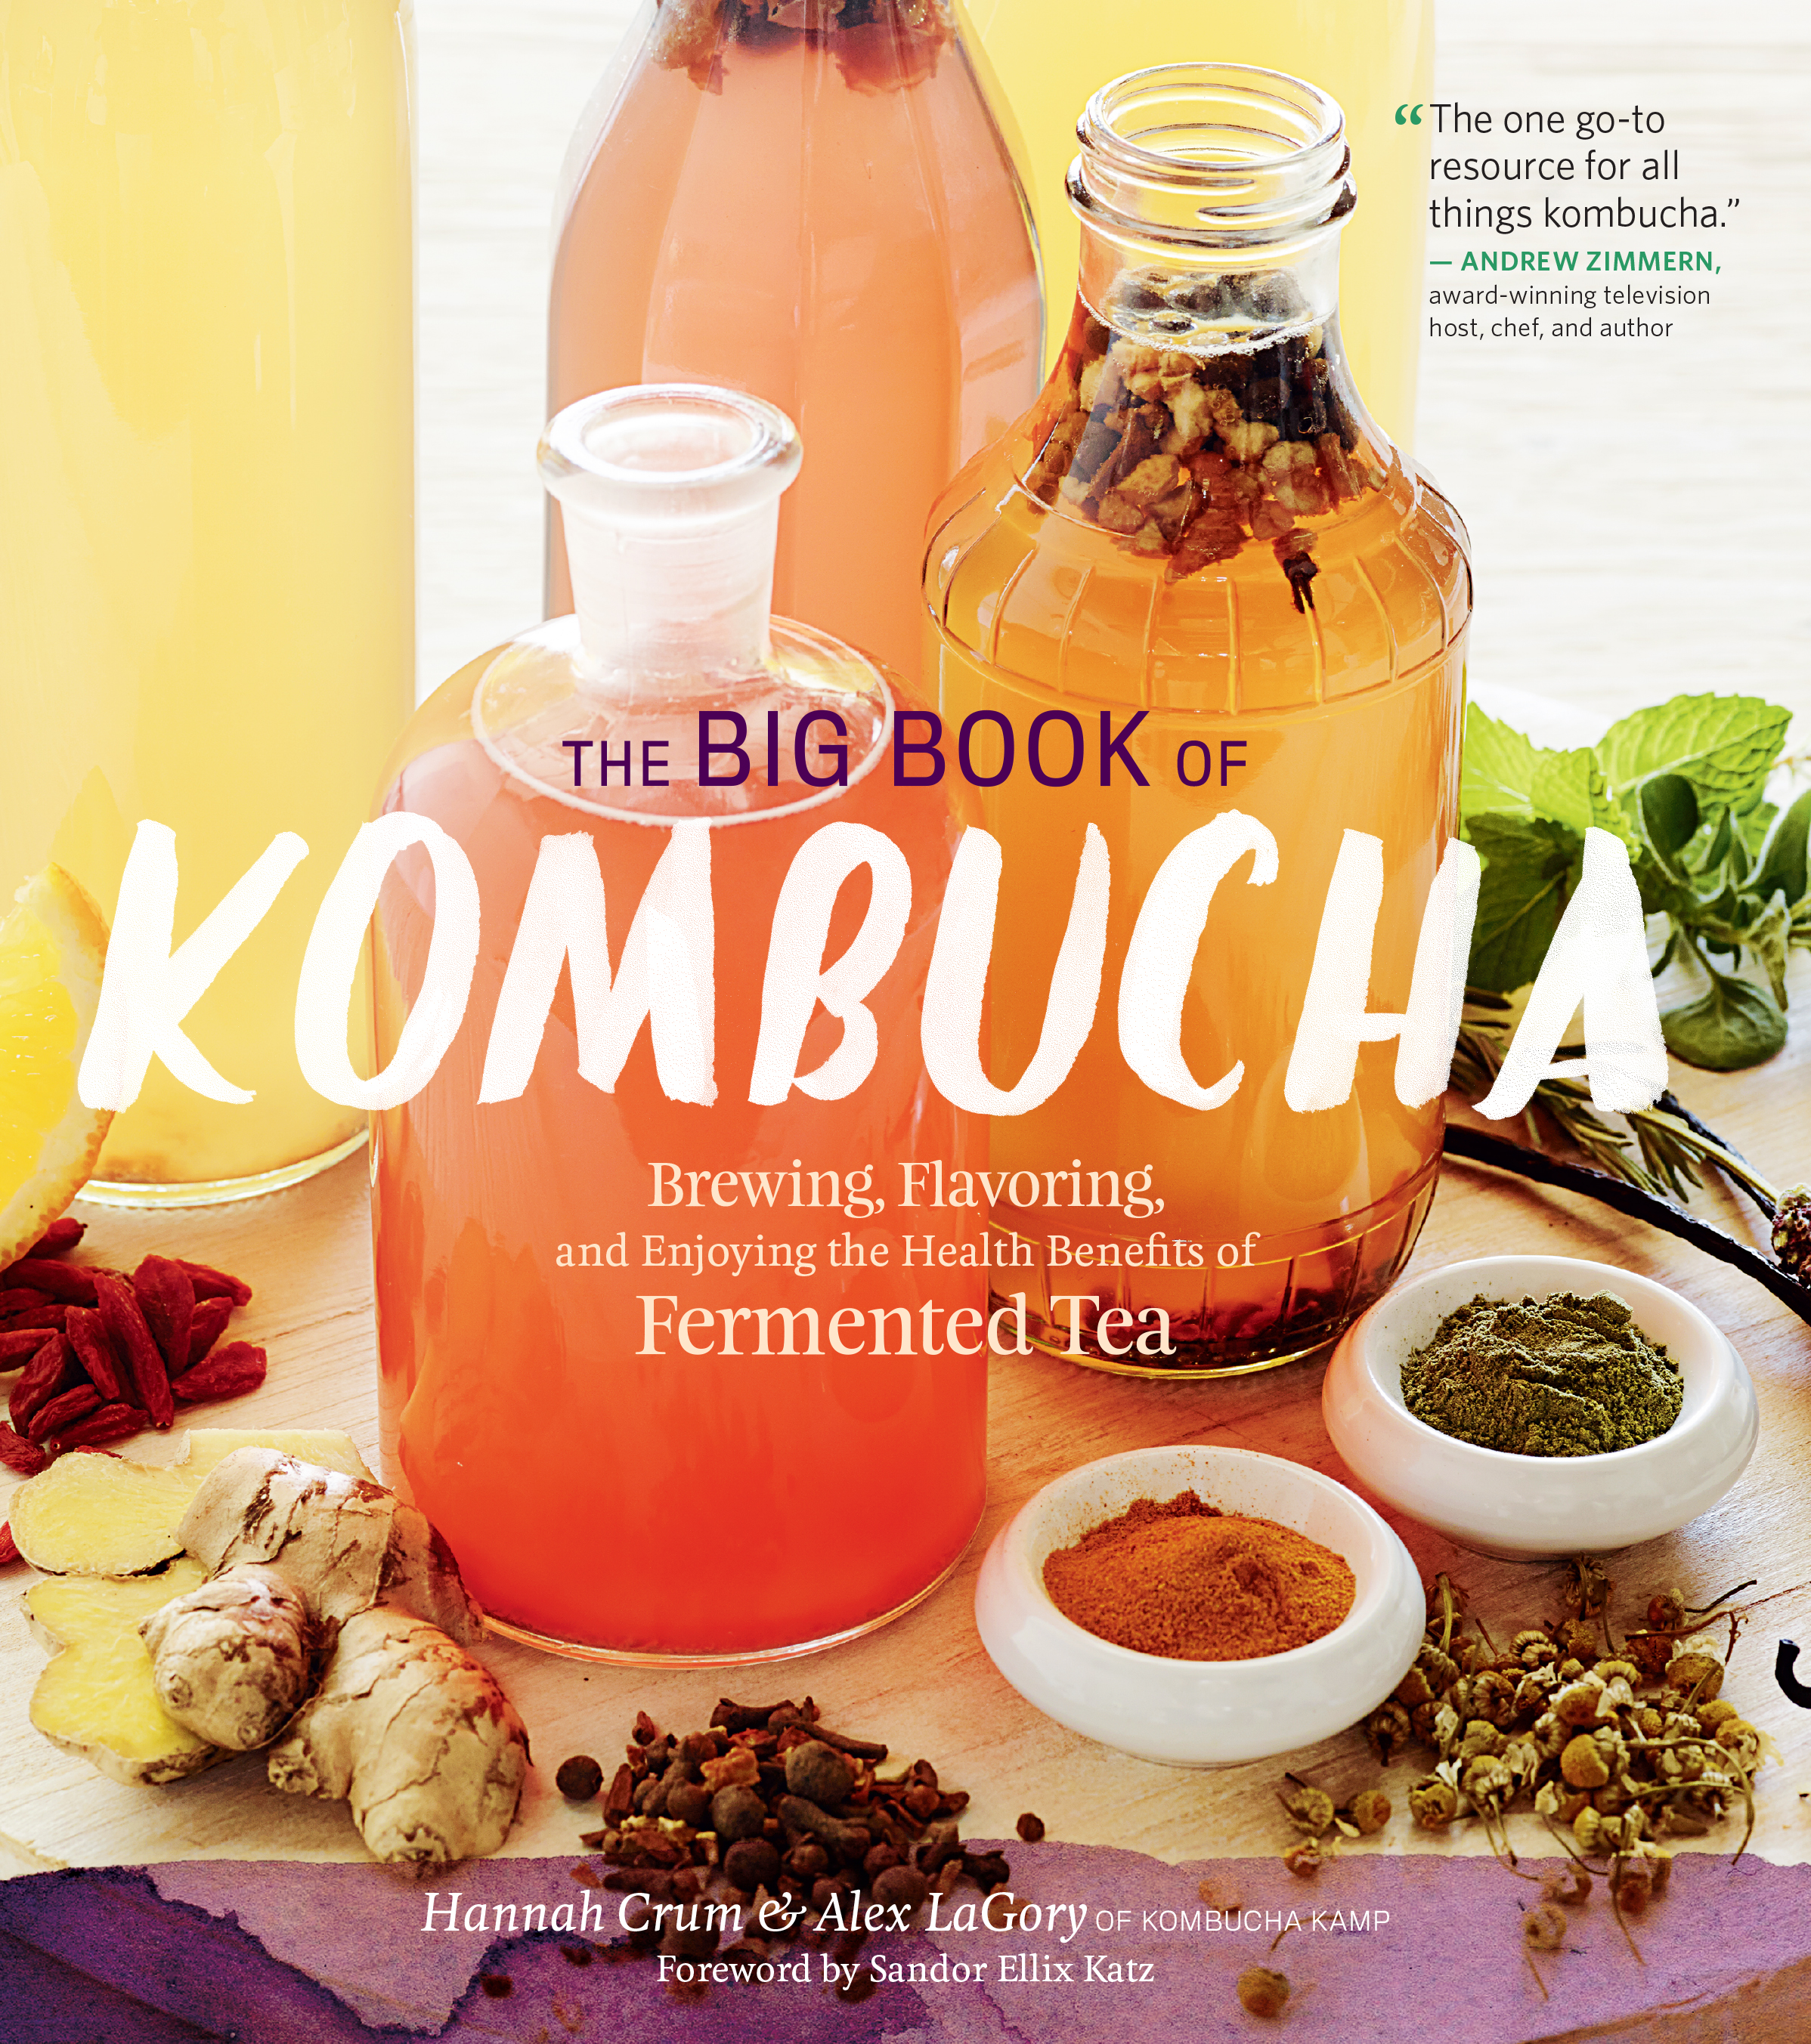 The Big Book of Kombucha Brewing, Flavoring, and Enjoying the Health Benefits of Fermented Tea - Hannah Crum